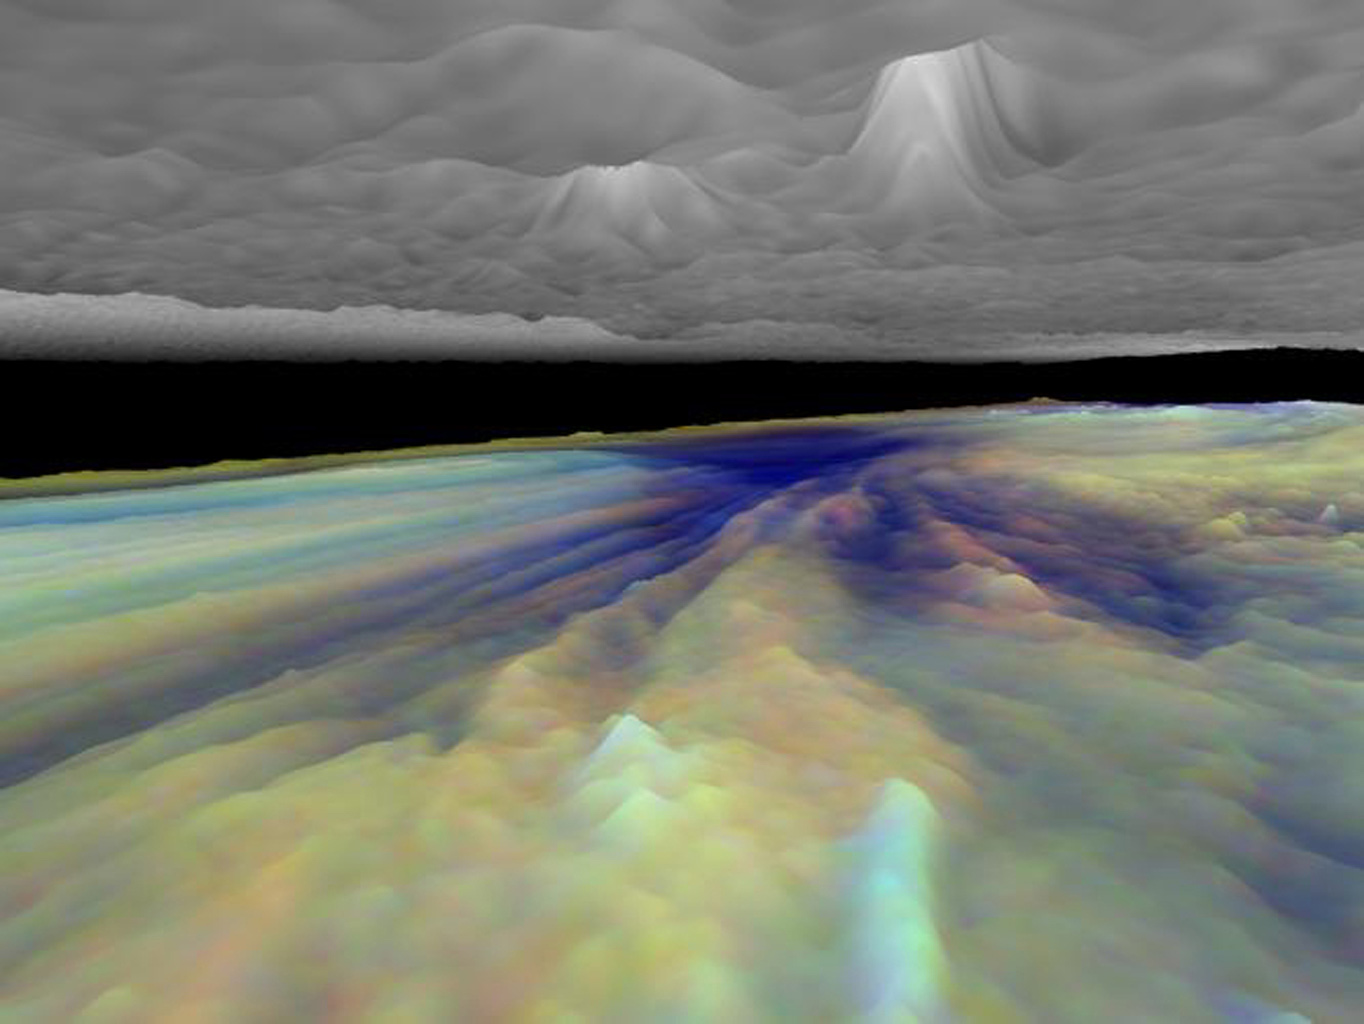 Frames from a three dimensional visualization of Jupiter's equatorial region. The images used cover an area near an equatorial 'hotspot' similar to the site where the probe from NASA's Galileo spacecraft entered Jupiter's atmosphere on December 7th, 1995.